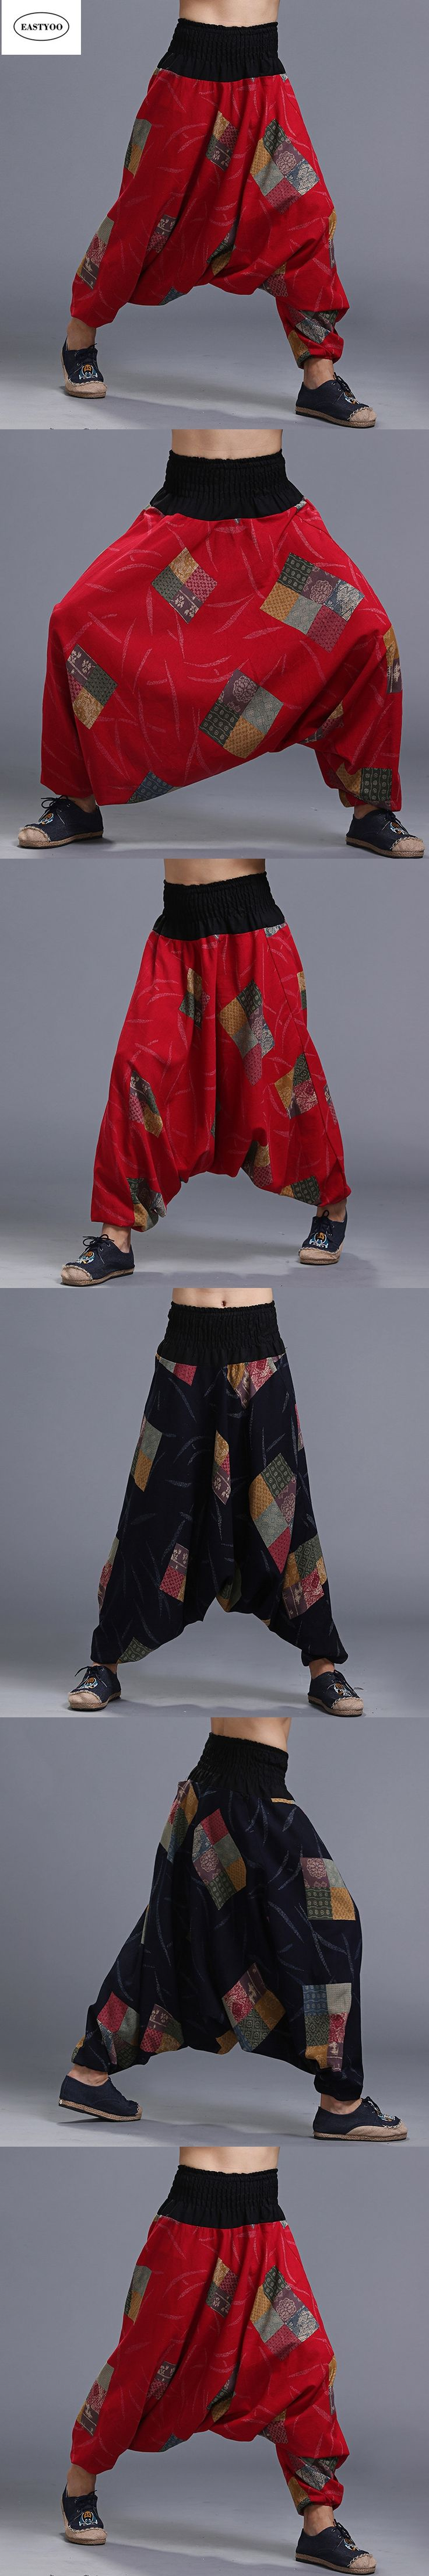 Print Cotton Pants Men Summer Loose Casual Cross-Pants Elastic Waist Long Trousers Ethnic Harem Pants Wide Leg Trousers